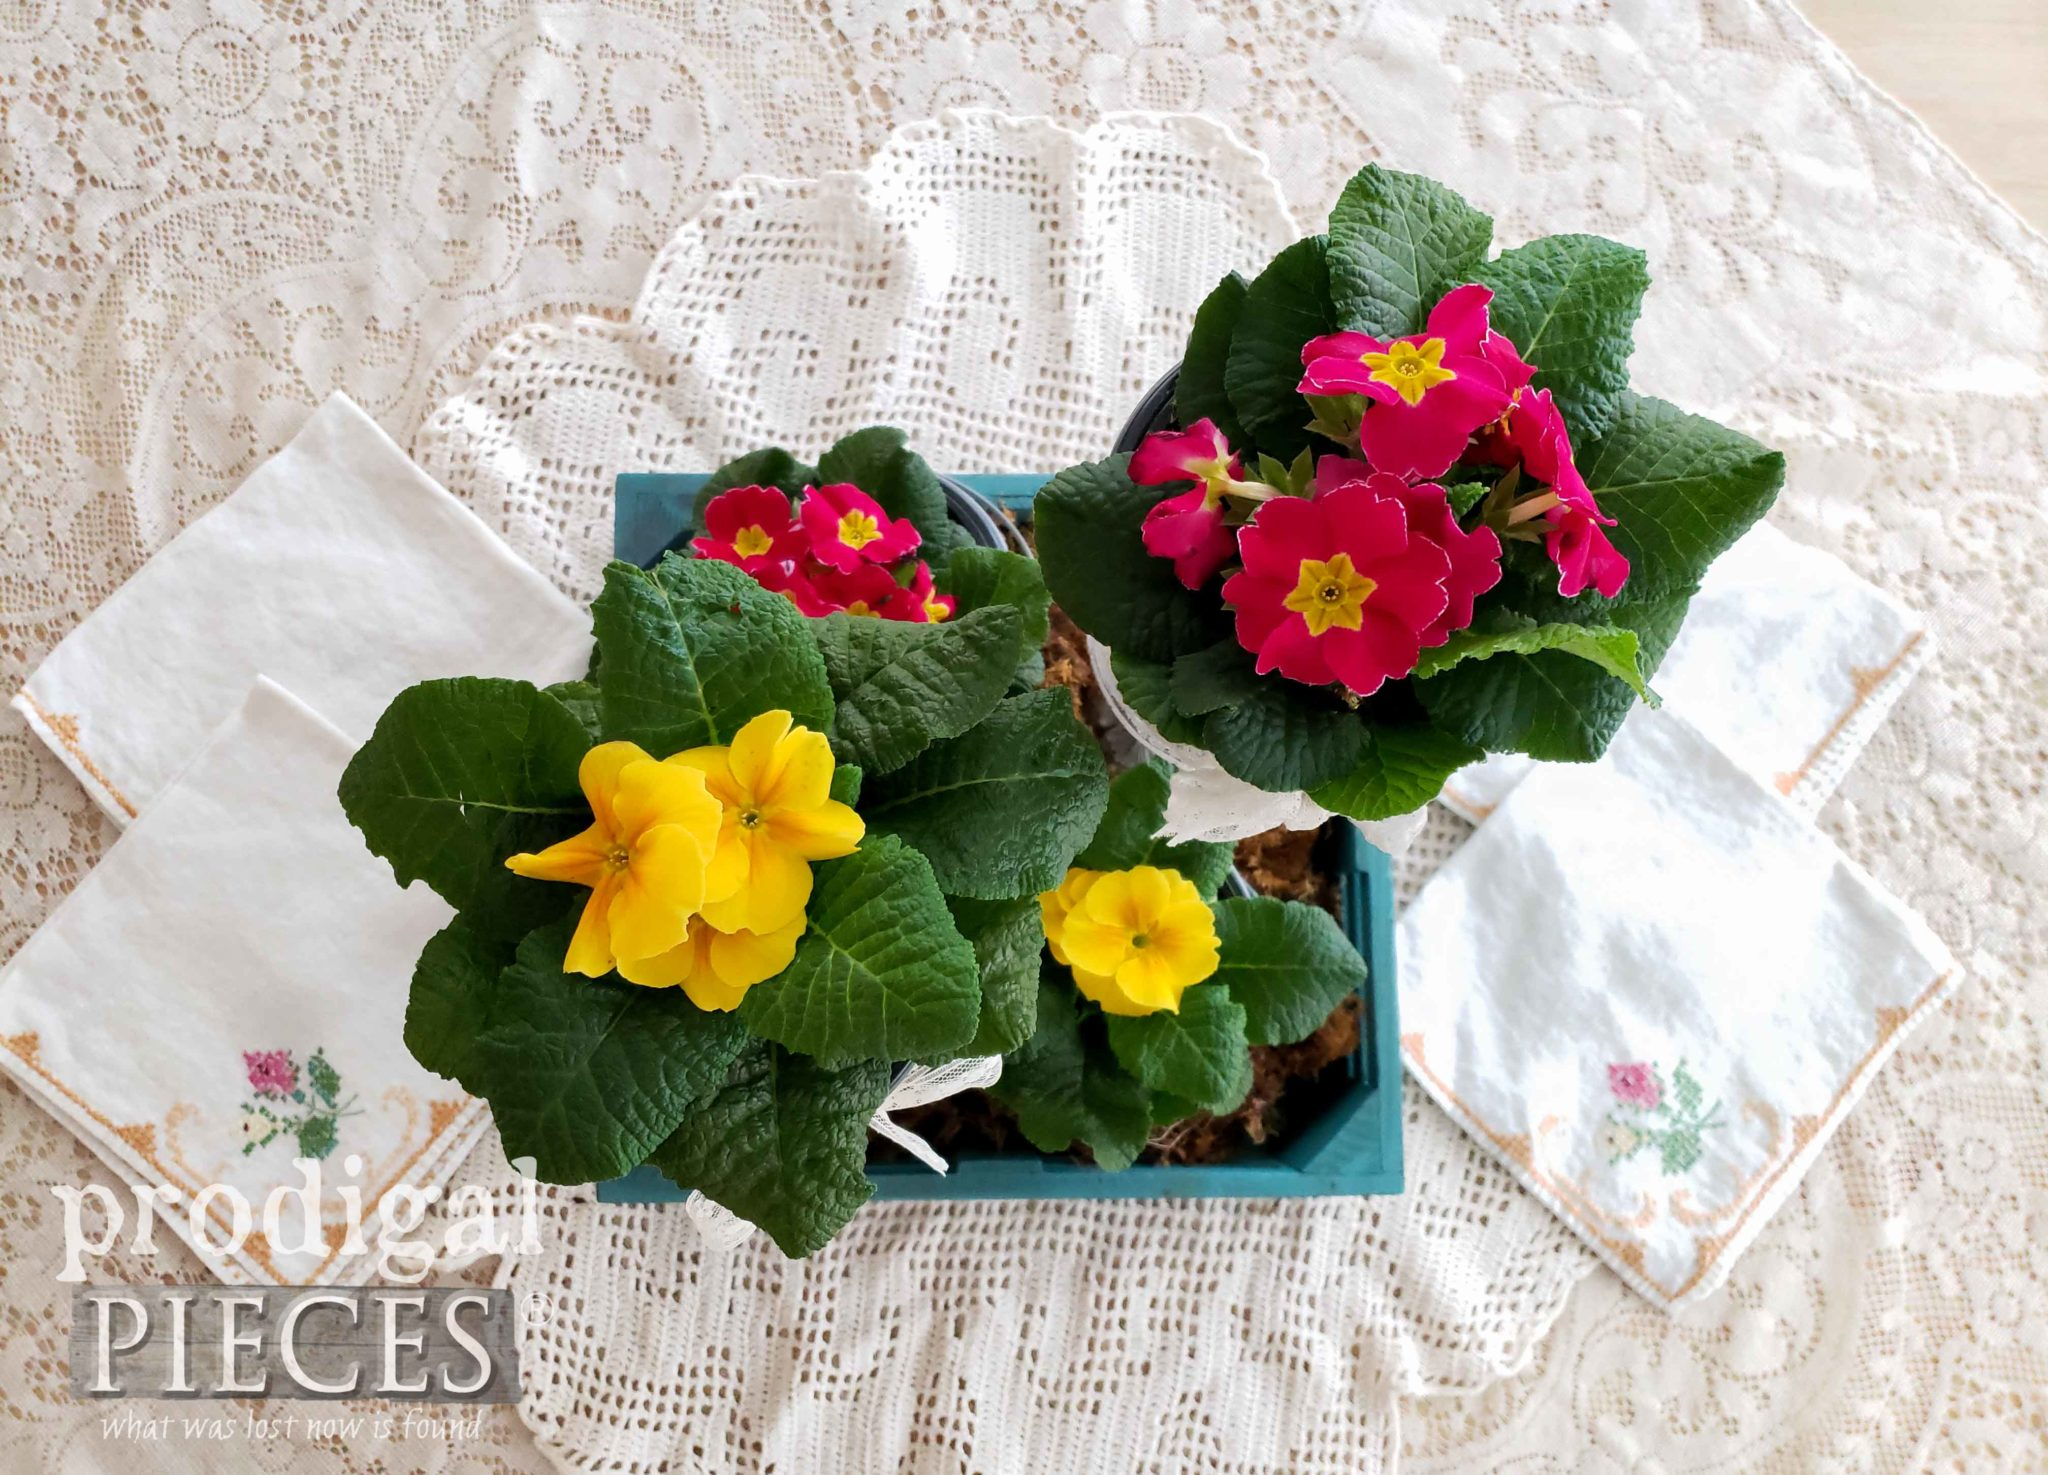 Vintage Spring Centerpiece with Primrose by Larissa of Prodigal Pieces | prodigalpieces.com #prodigalpieces